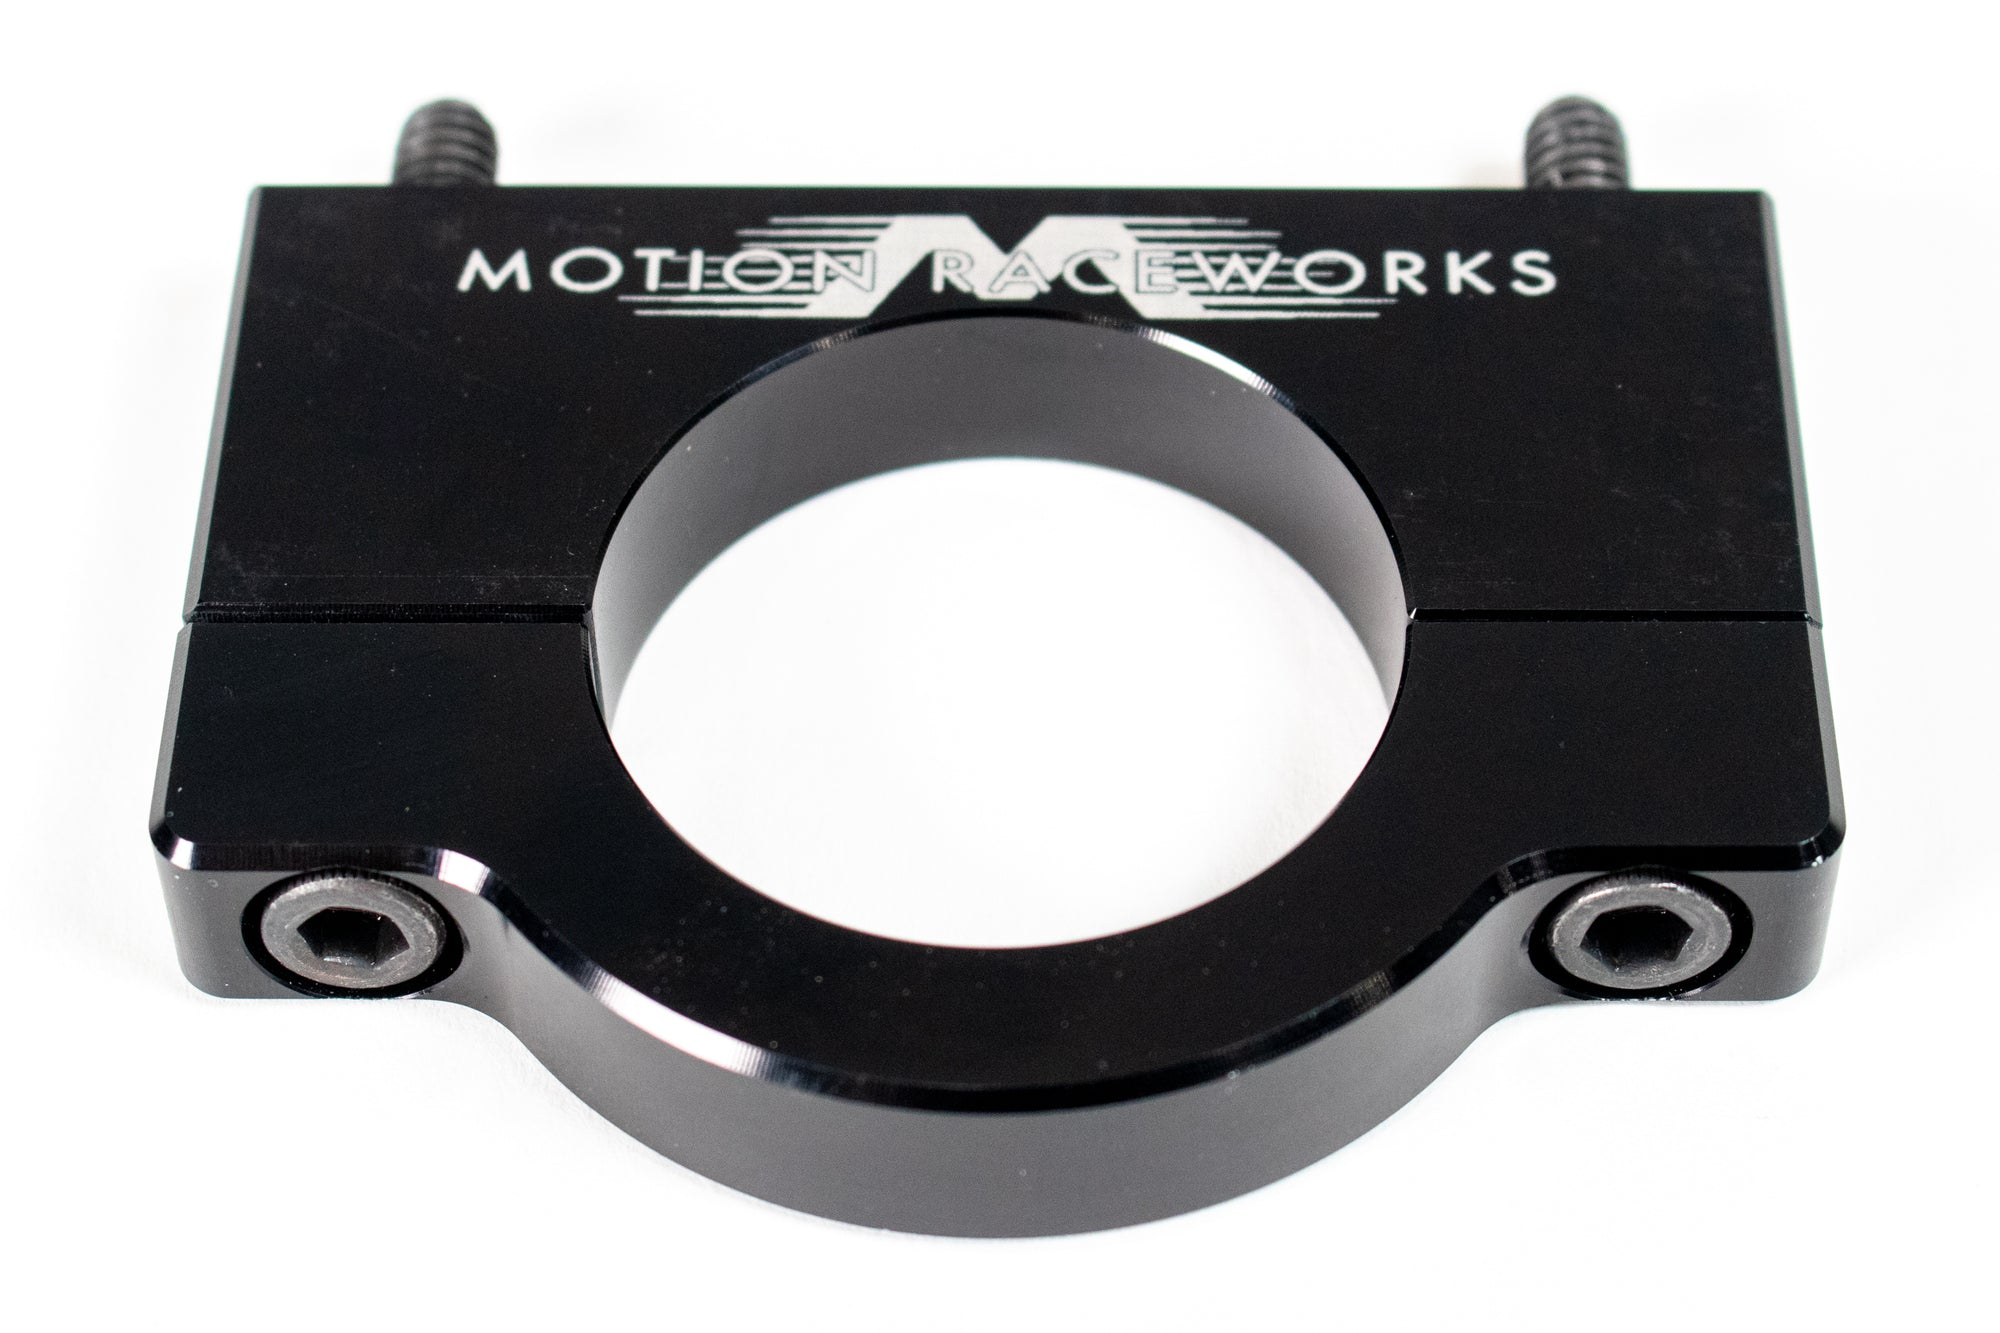 Motion Raceworks 1 3/4 Roll bar mount 1812004 - Motion Raceworks